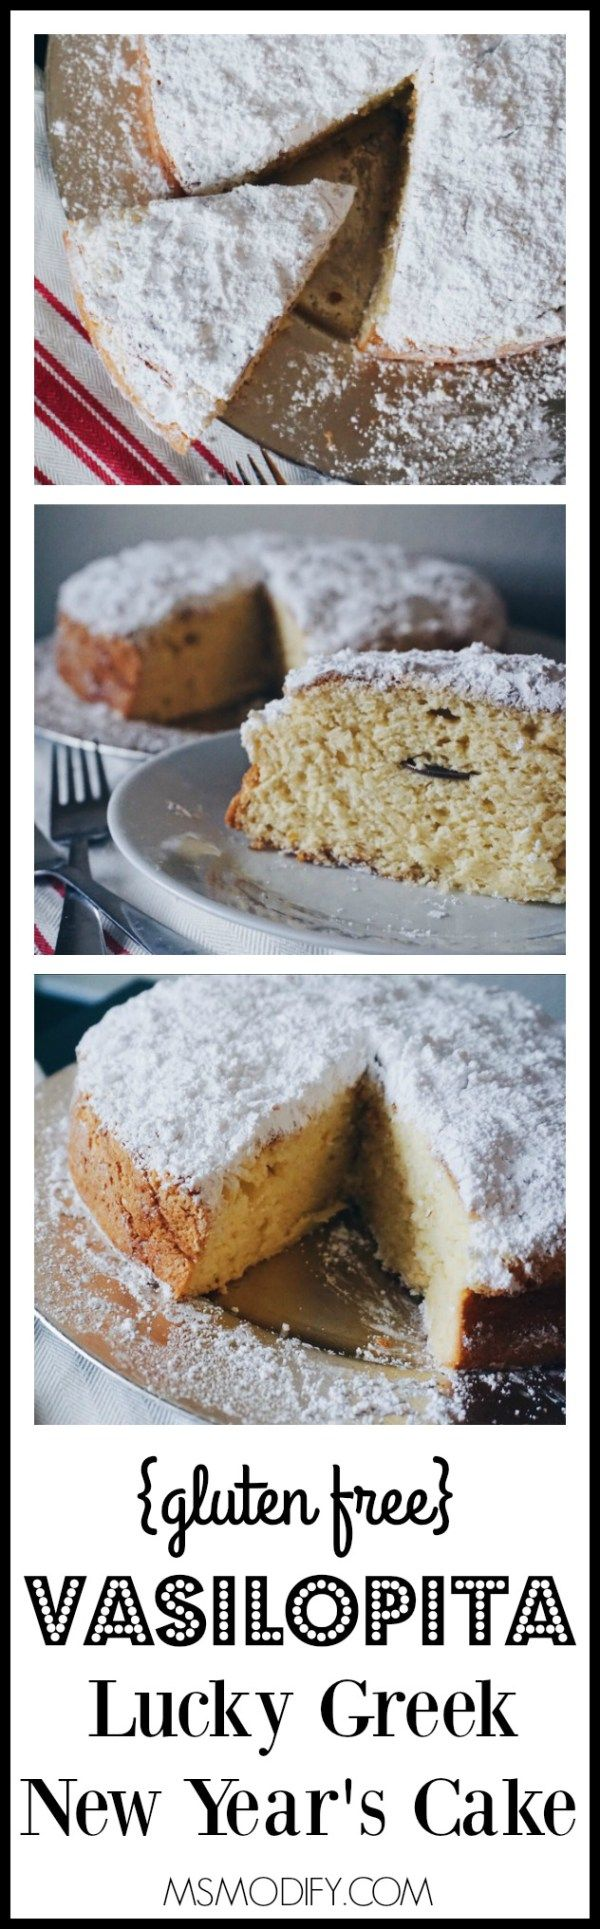 This traditional Lucky Greek New Year's Cake called a Vasilopita, has a hint of orange flavor, is covered in powdered sugar and has a coin hidden inside for good luck!